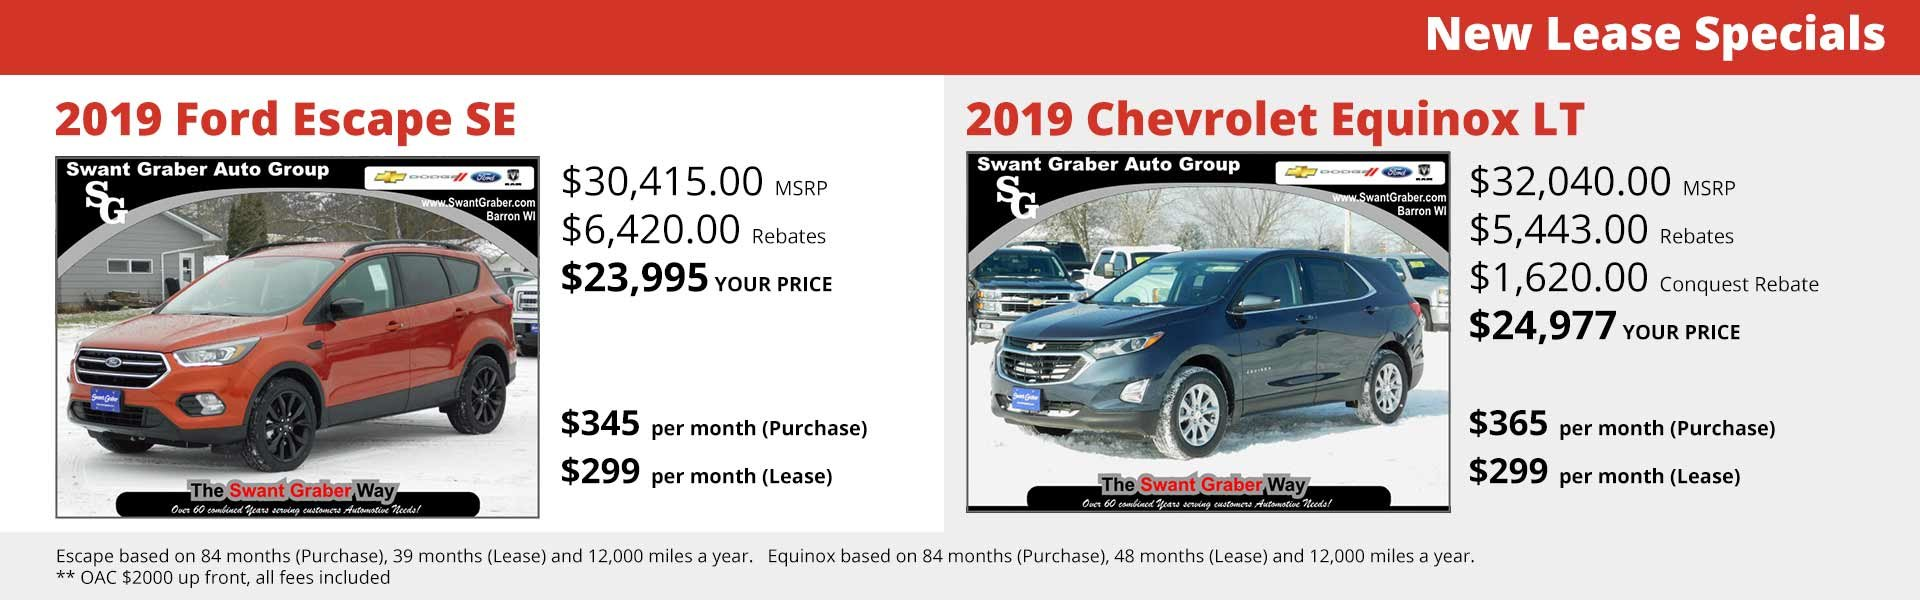 New Lease Specials